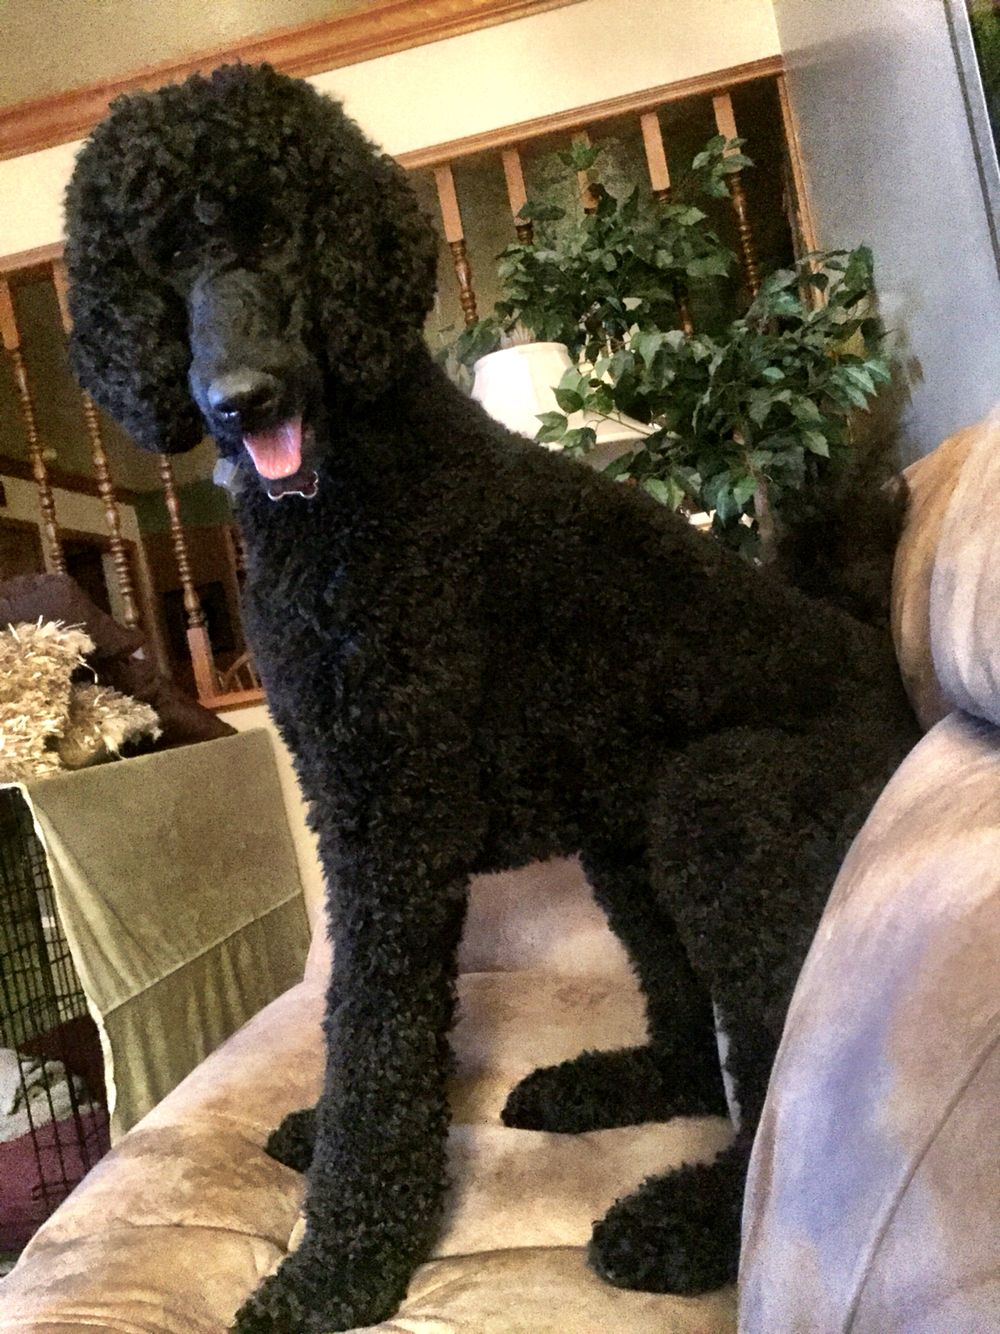 Poodle Version Of Couch Sitting